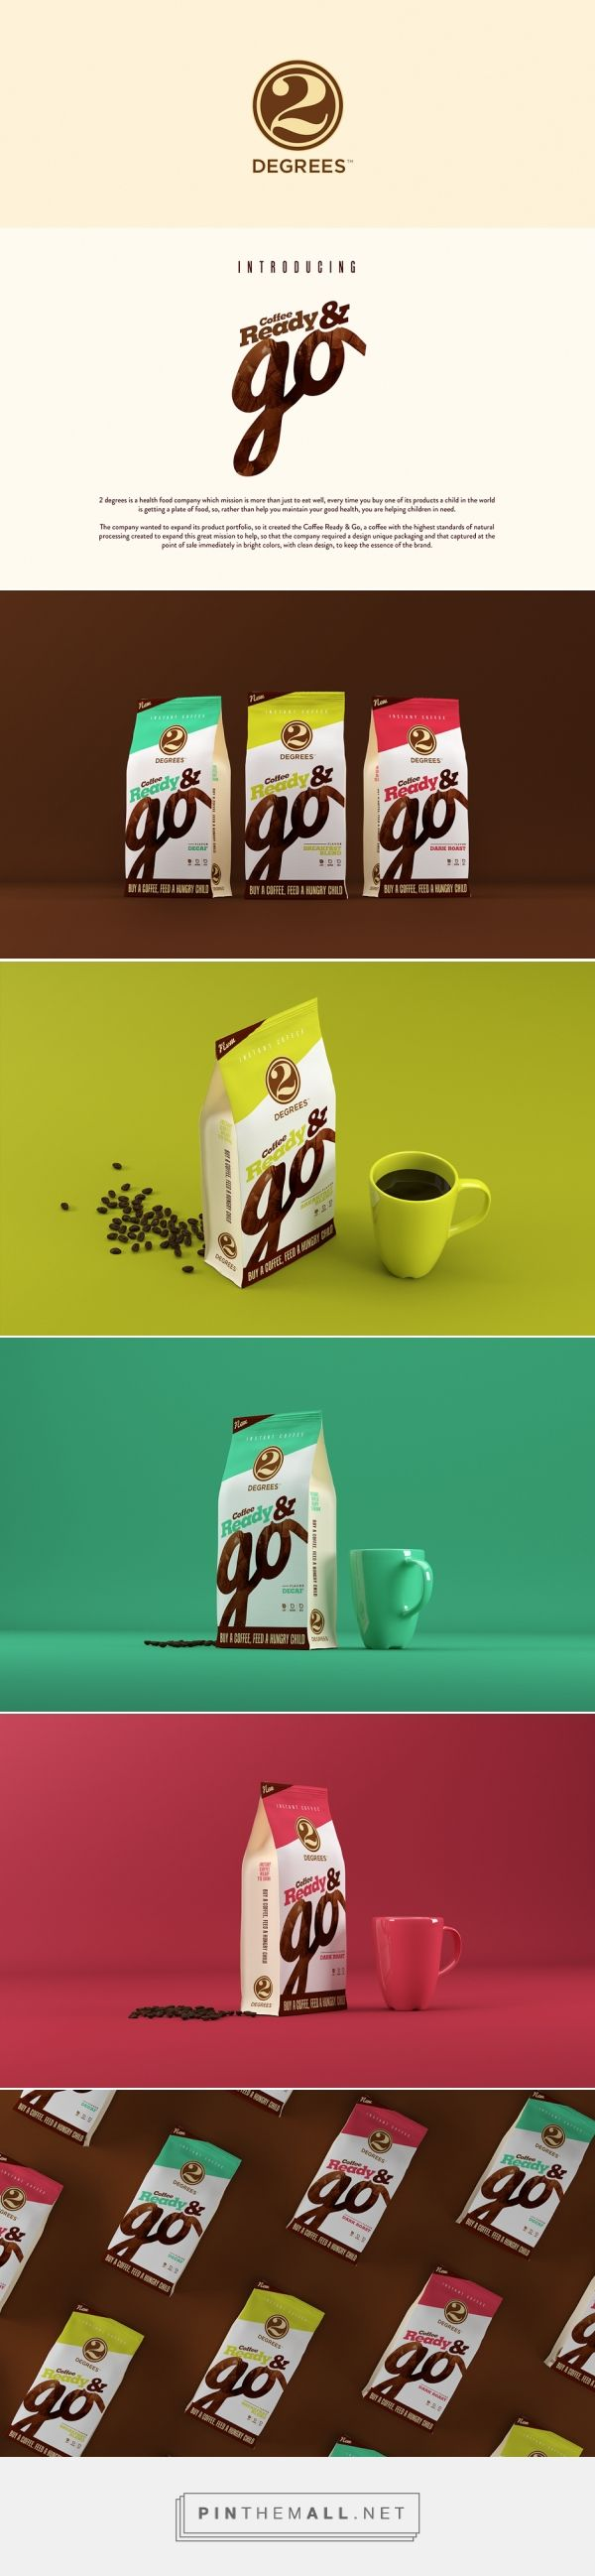 2 Degrees Coffee Ready & Go packaging designed by Leandro Palencia (Colombia) - http://www.packagingoftheworld.com/2016/03/2-degrees-coffee-ready-go.html